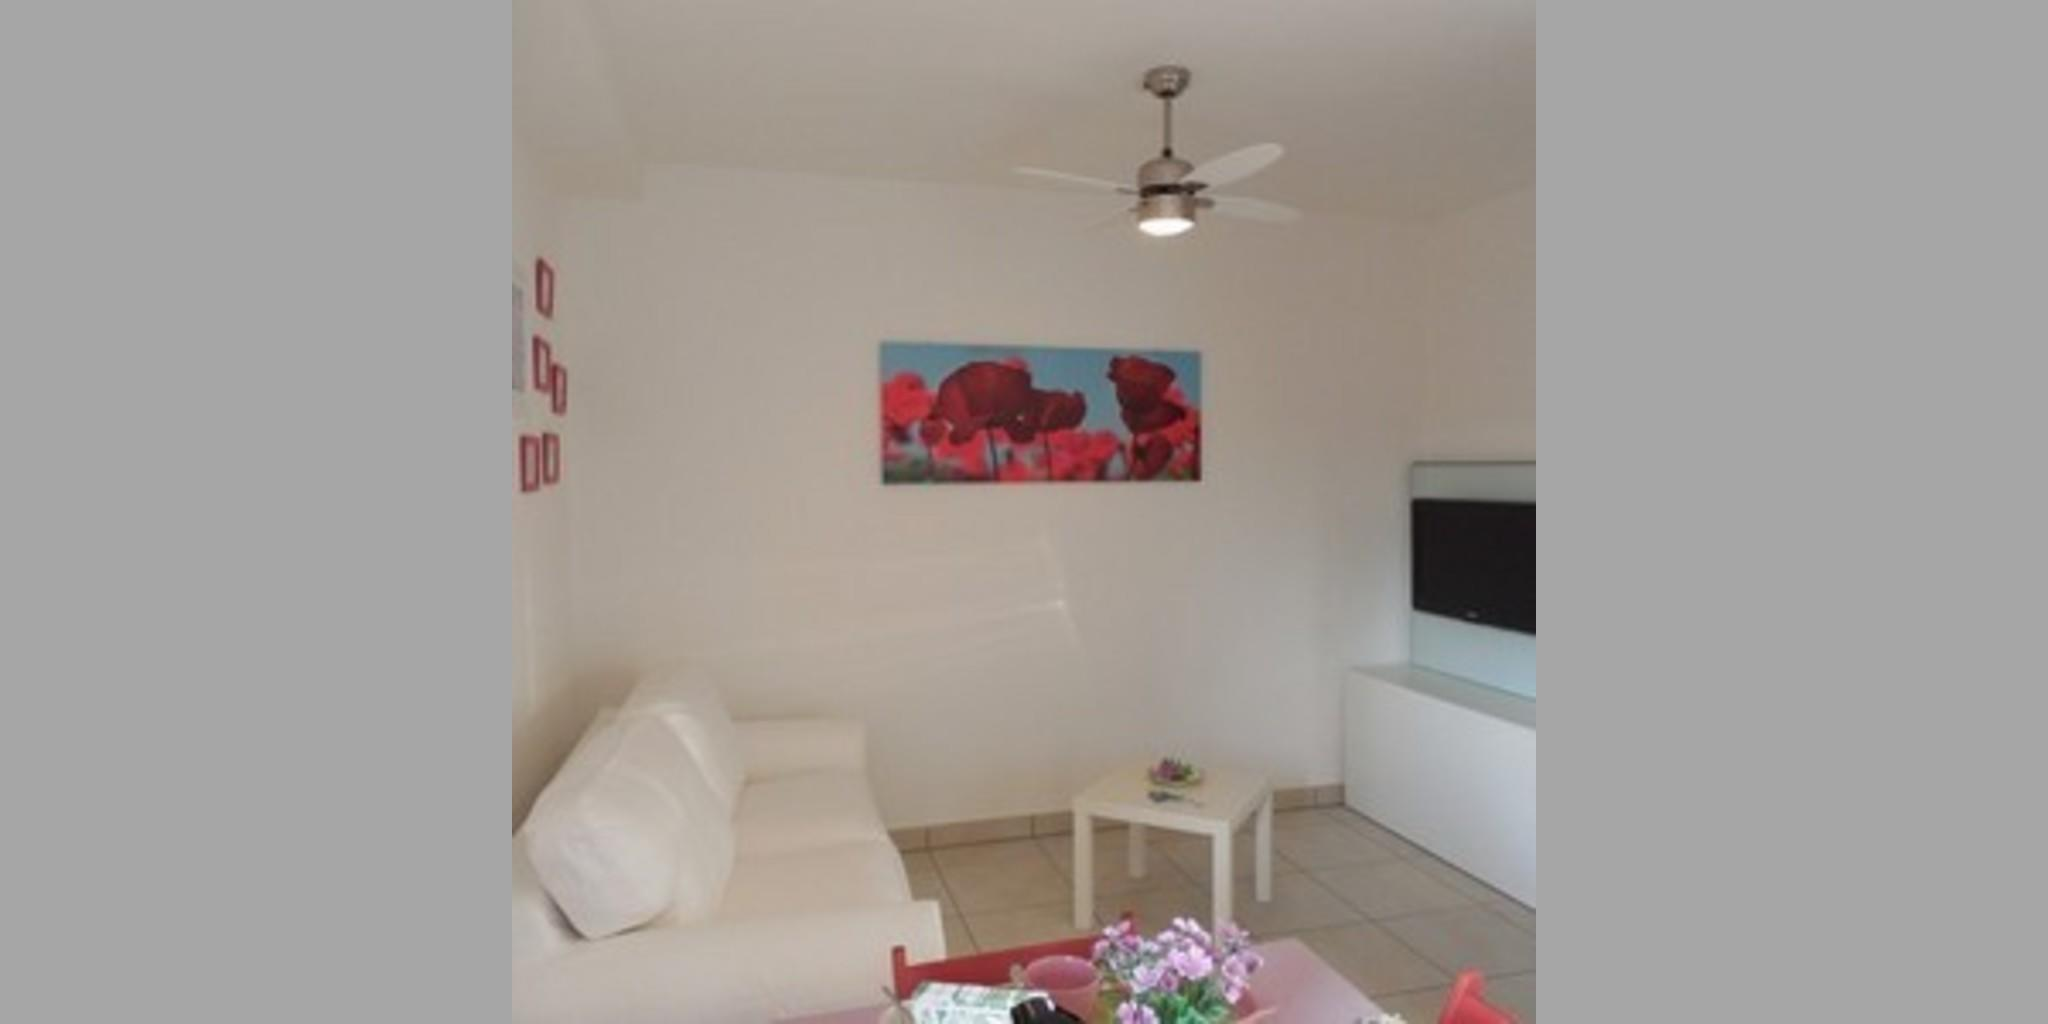 Bed & Breakfast Civitanova Marche - Santa Maria Apparente